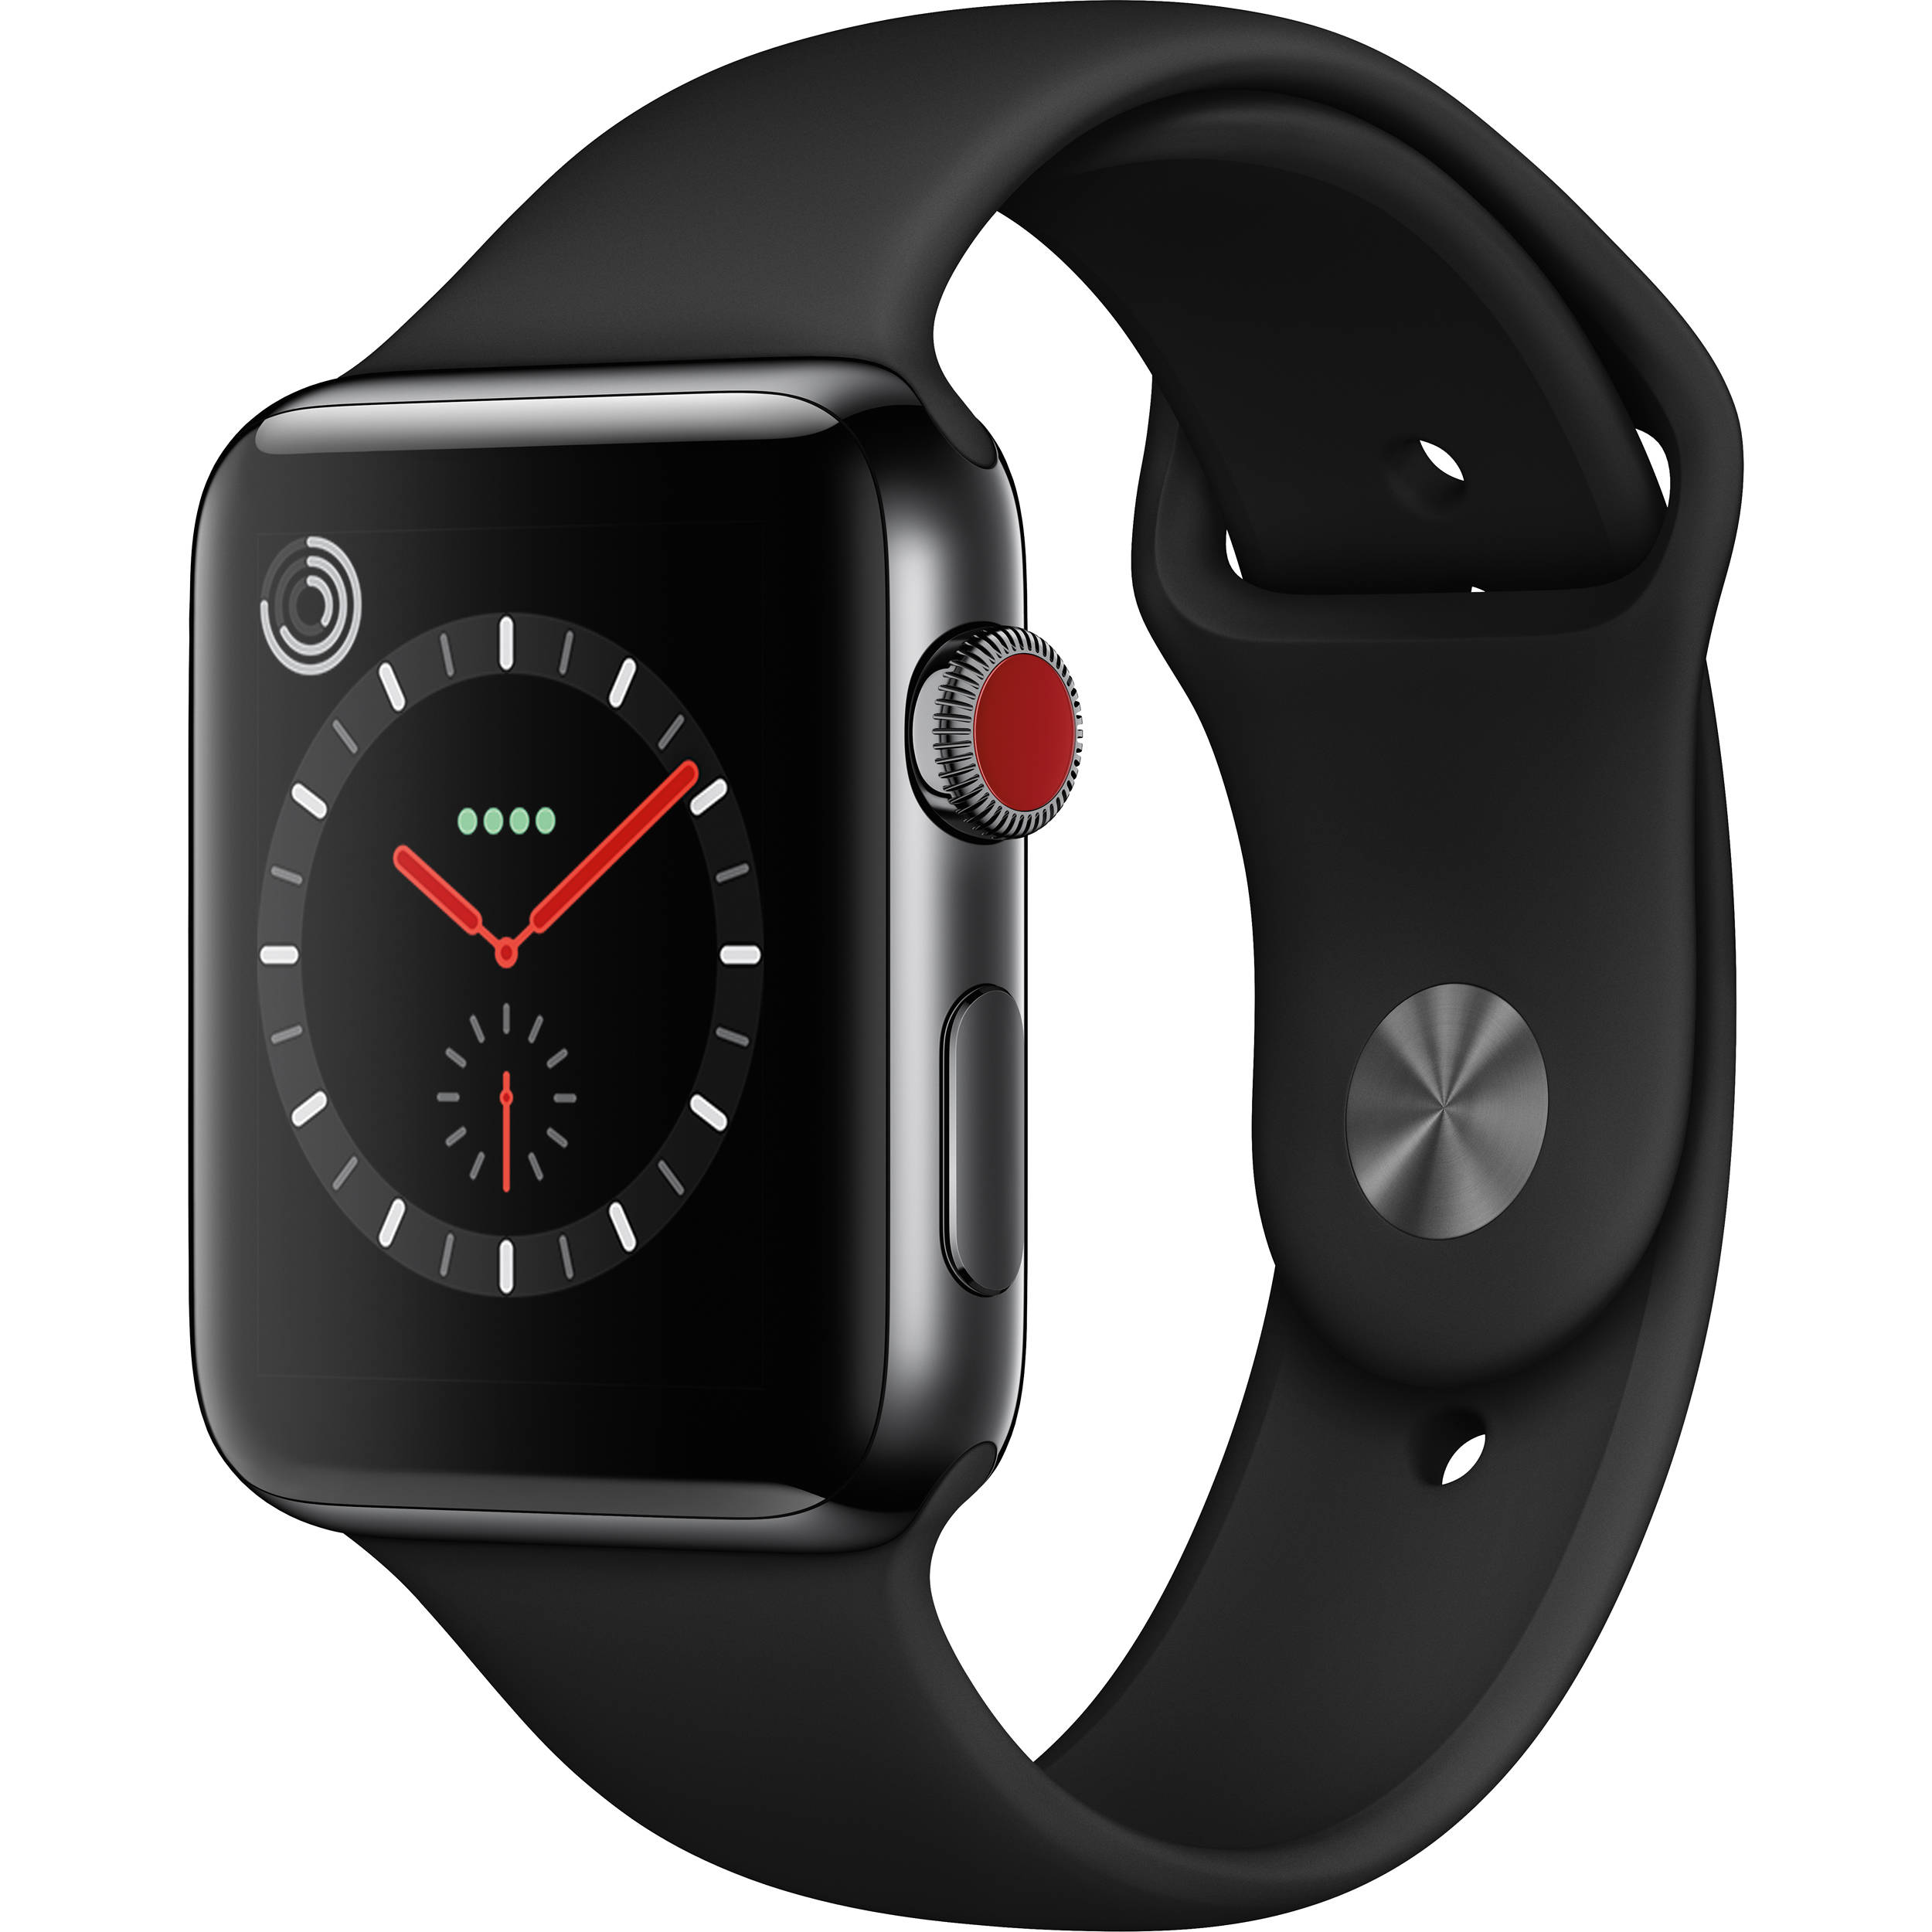 buy online 170f5 74f5c Apple Watch Series 3 42mm Smartwatch (GPS + Cellular, Space Black Stainless  Steel Case, Black Sport Band)